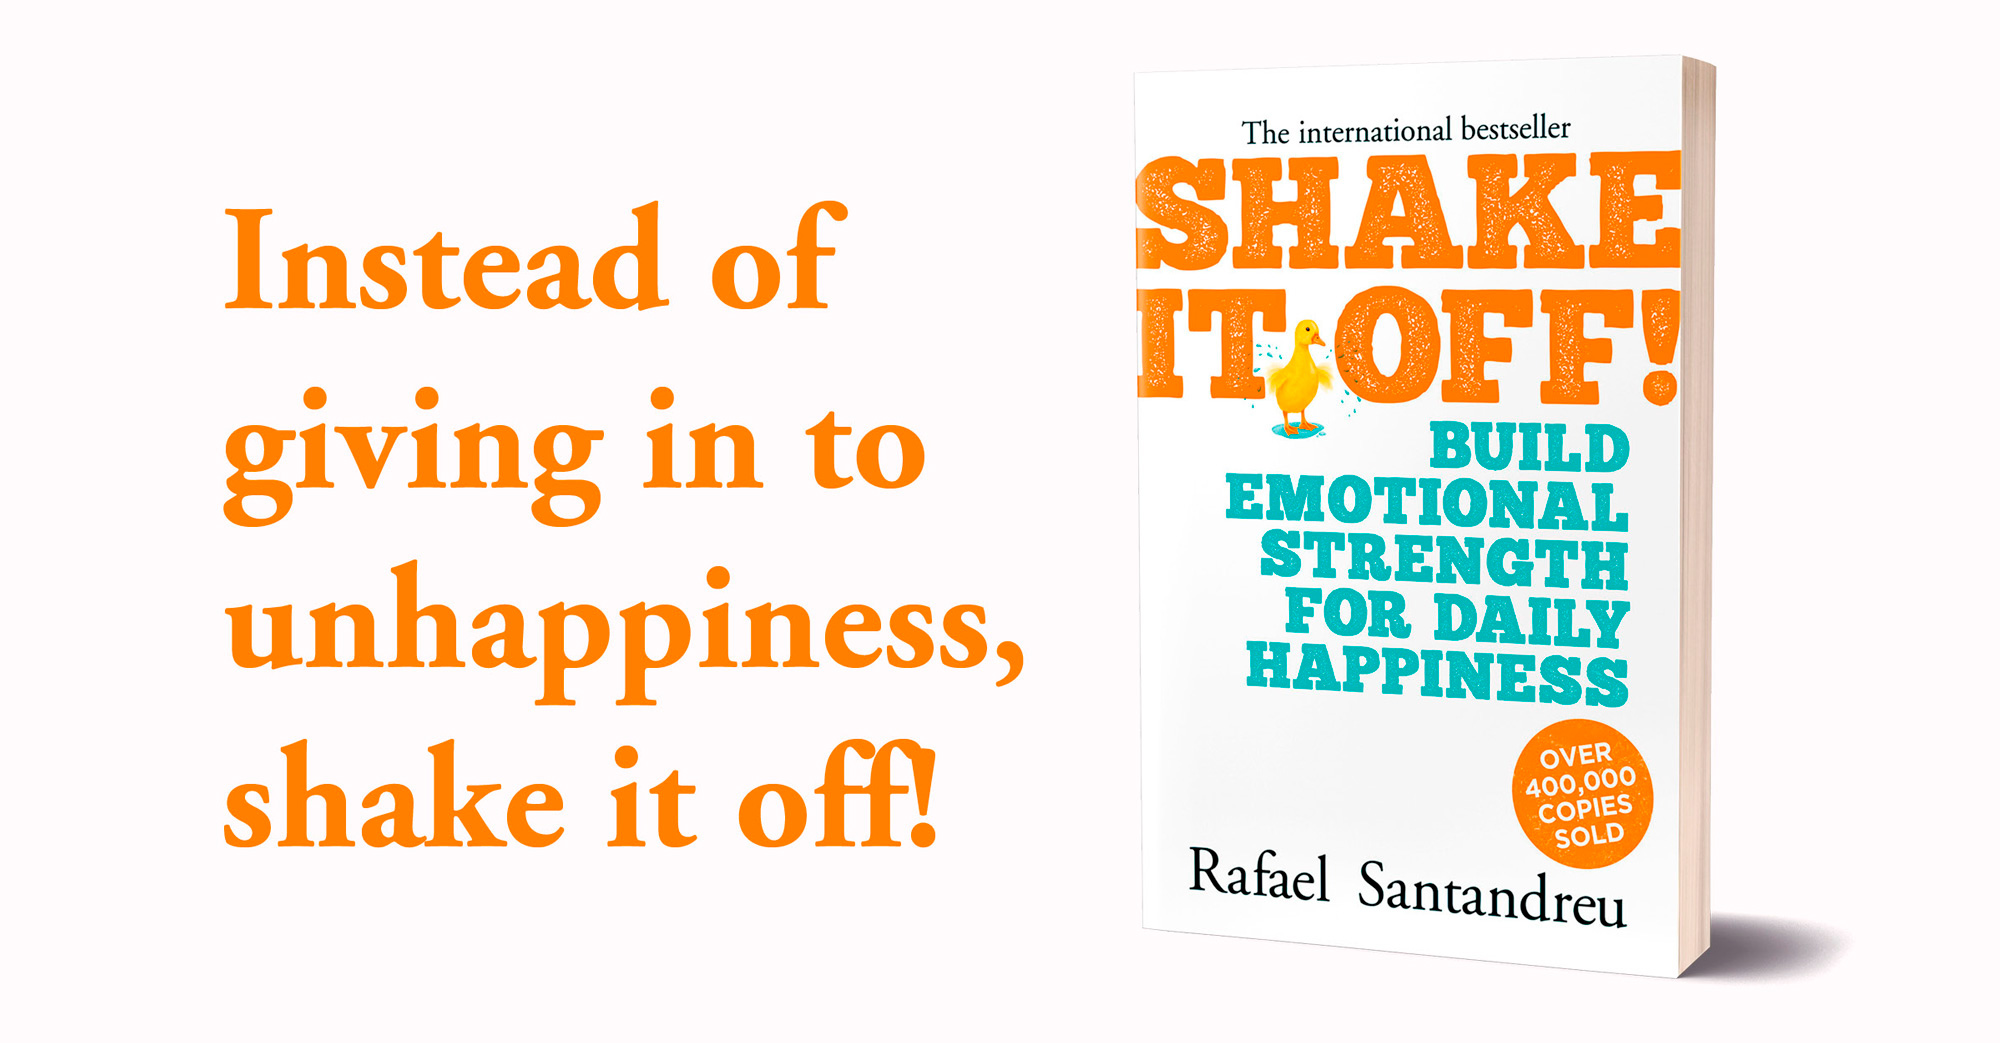 Instead of giving in to unhappiness, shake it off!